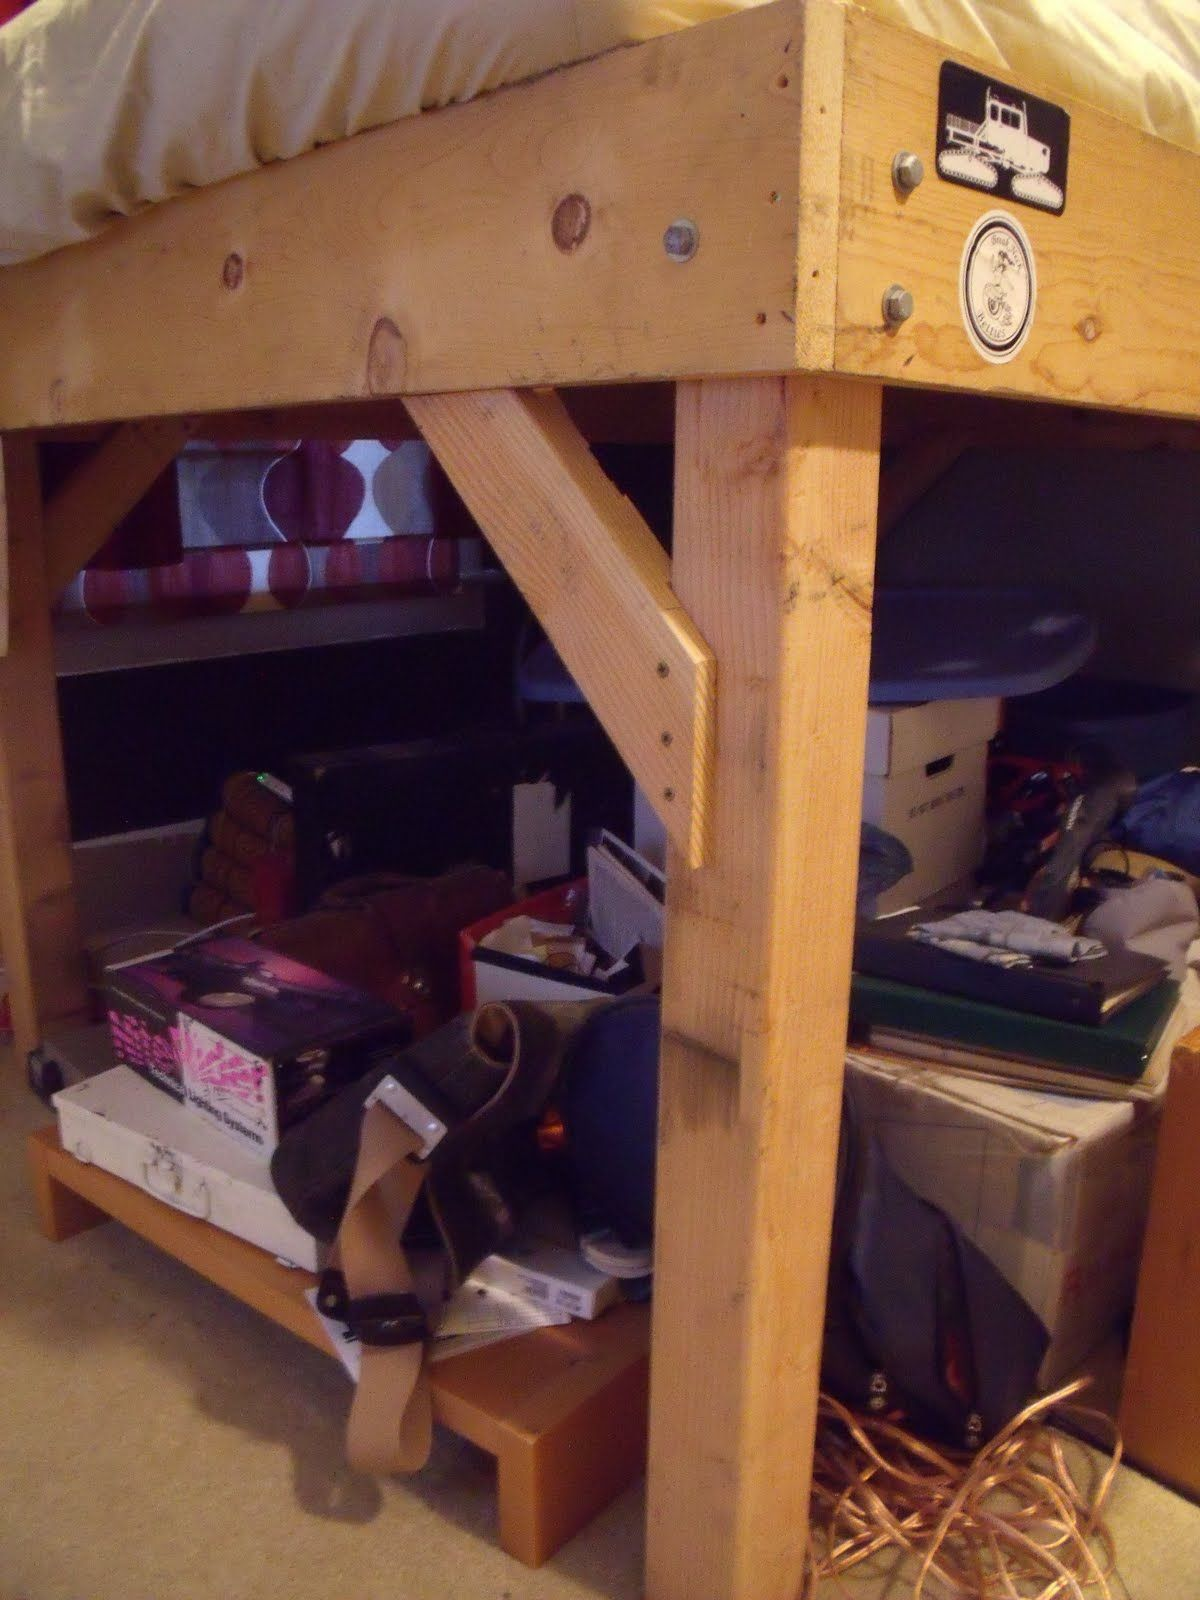 diy 4x4 bunk beds | Make Your Own Loft Bed | Bodacious ...